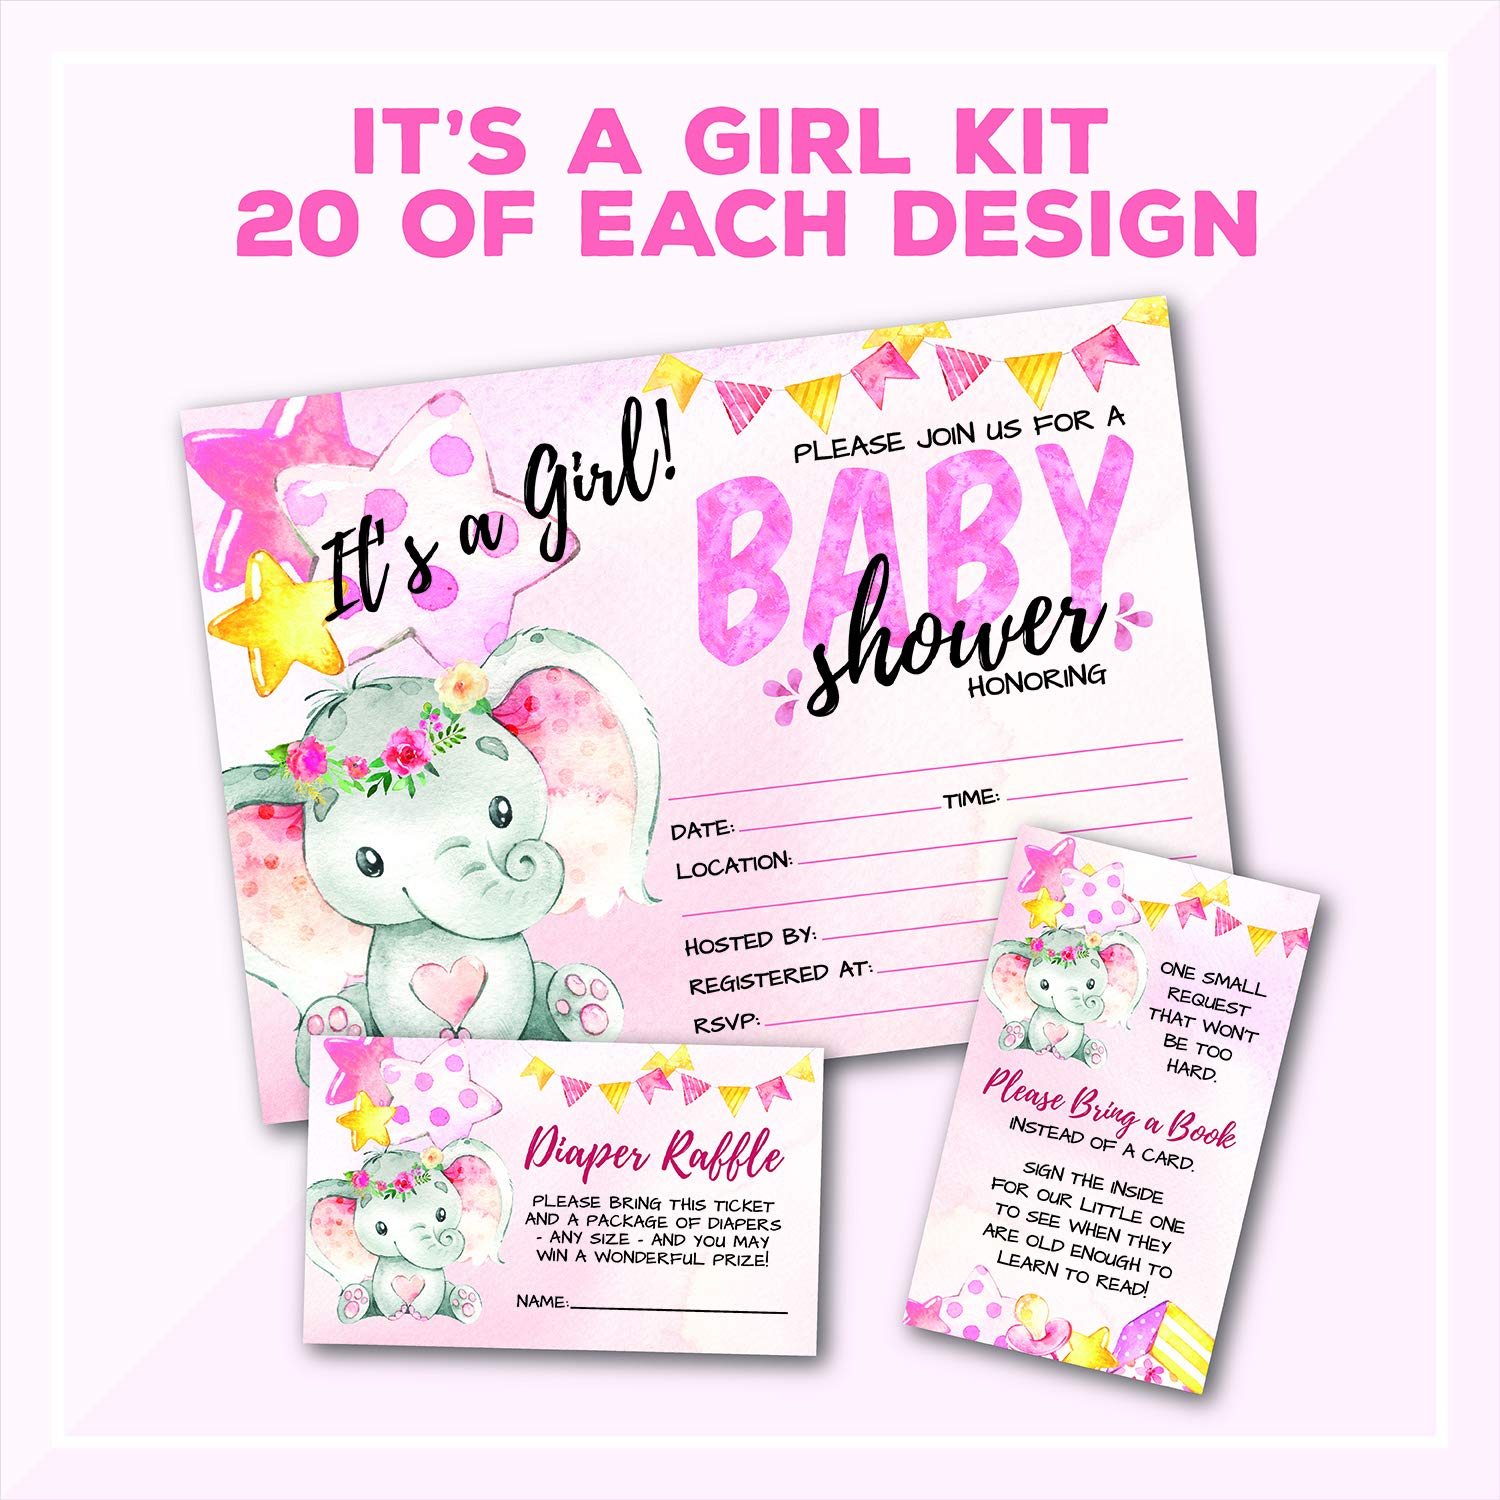 Deluxe Pink Elephant Baby Shower Invitations, Jungle, Tropical Safari Animals, Its A Girl Party Invites, Includes- 20 Each Large Double Sided 5 x 7 Invites, Raffle Tickets, and Book Request Inserts by Pink Pixie Studio (Image #1)